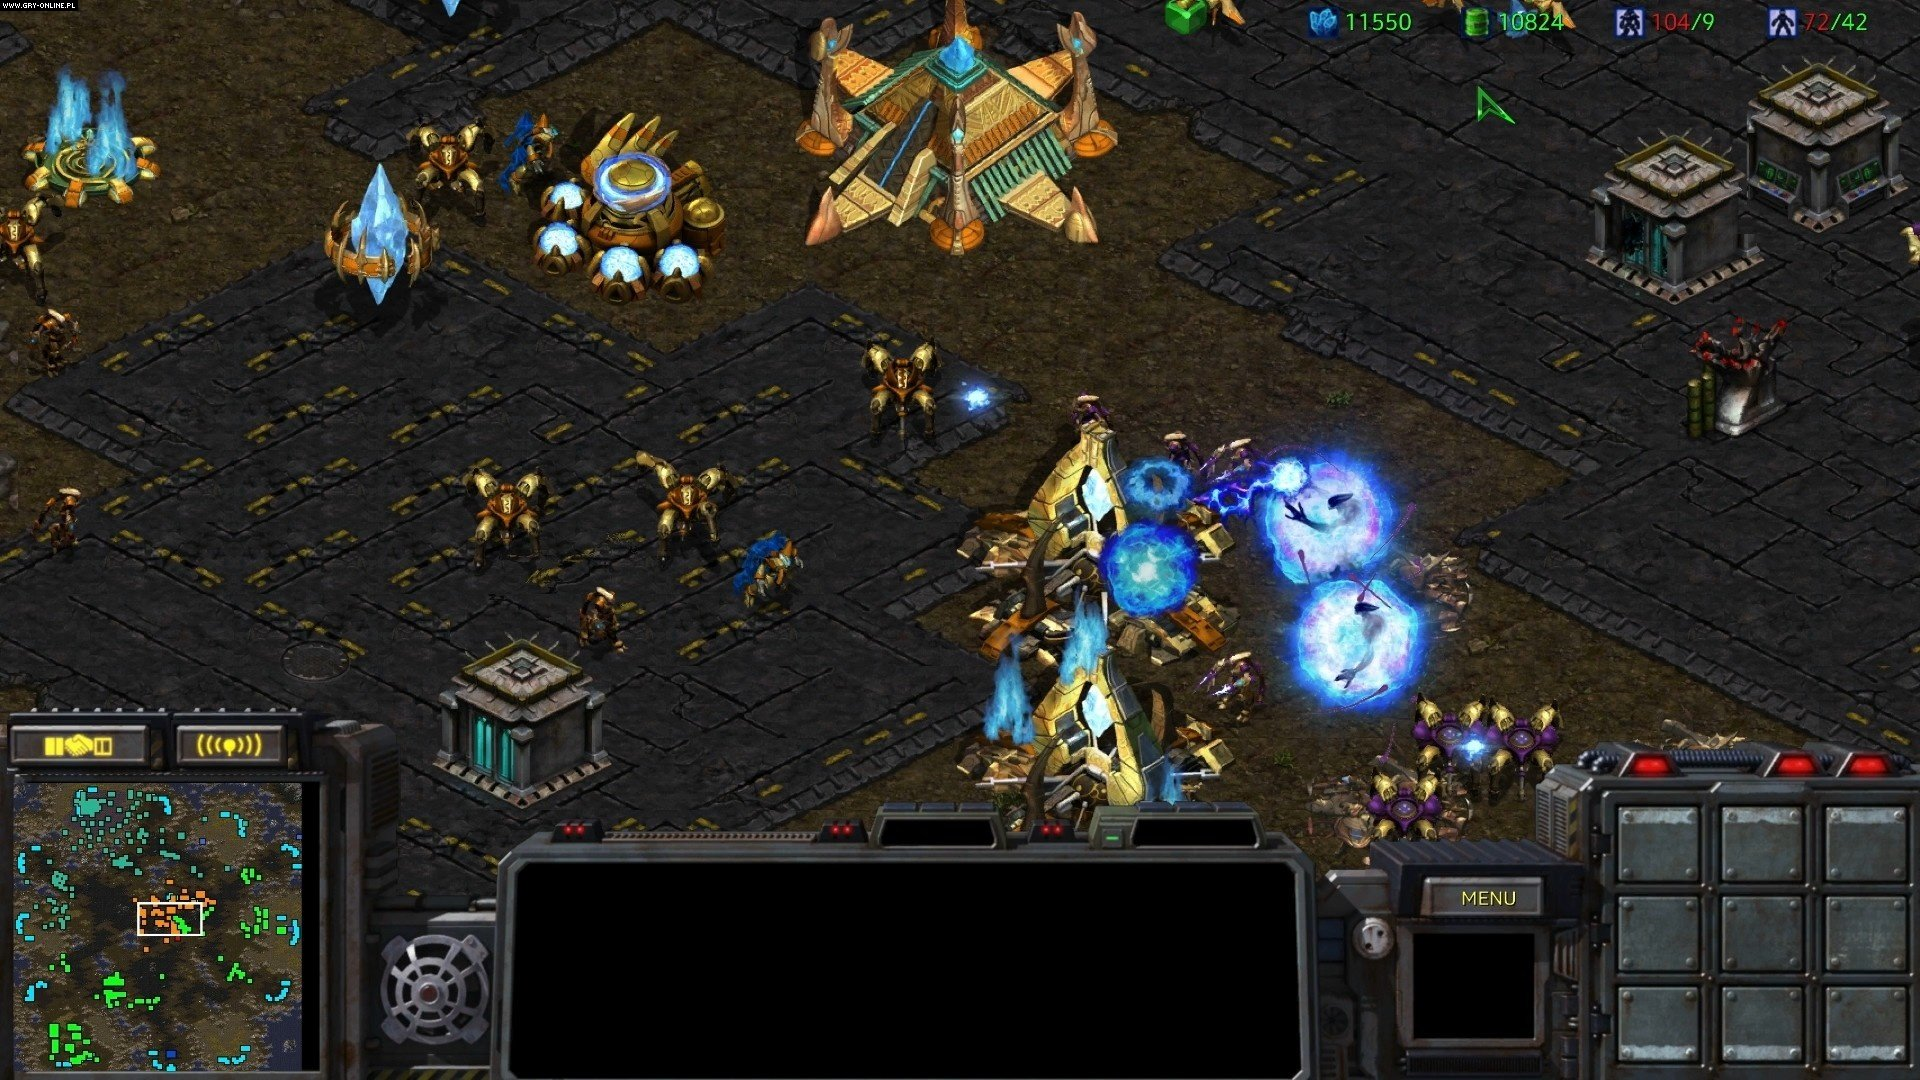 StarCraft: Remastered PC Gry Screen 2/15, Blizzard Entertainment